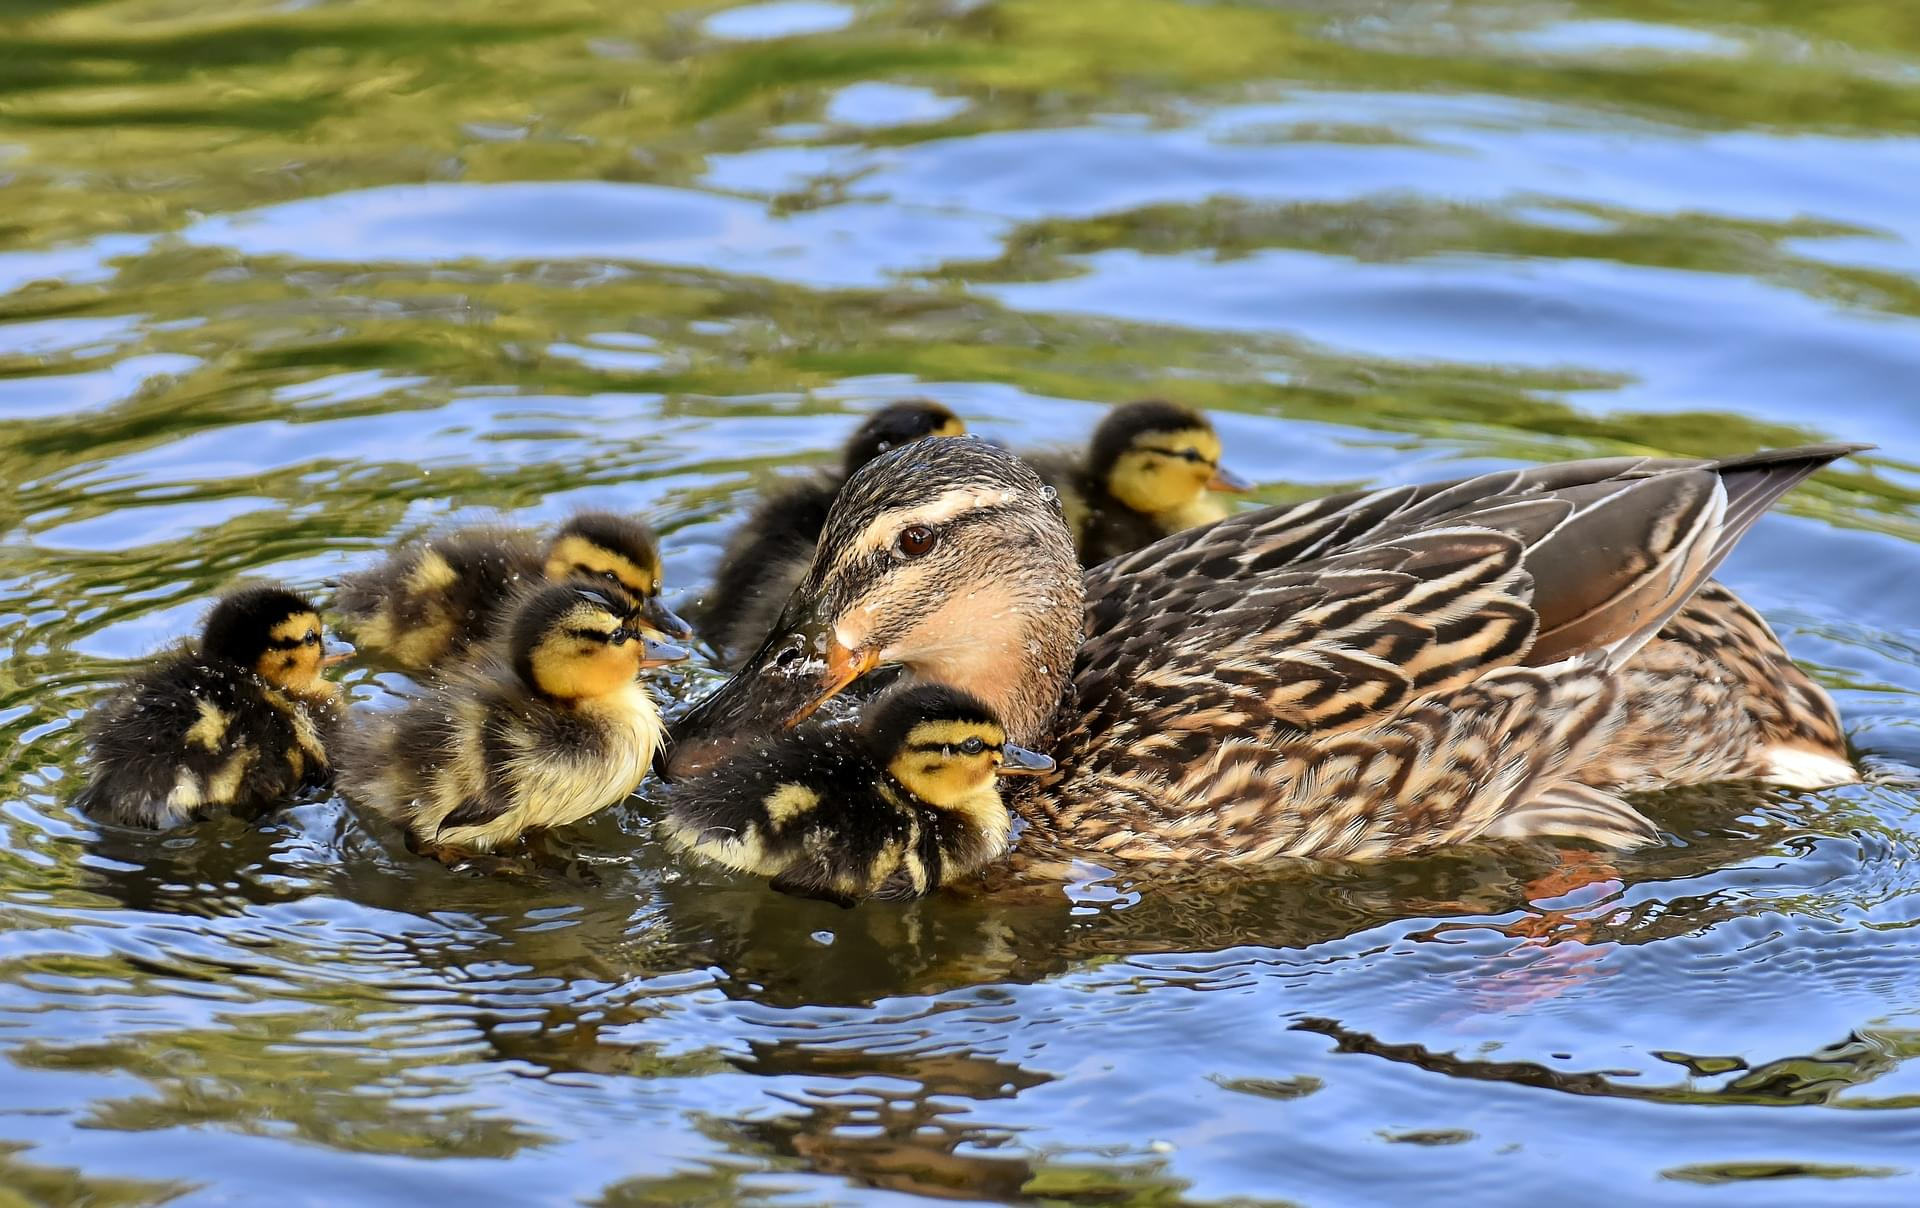 Indianapolis Firefighters And Animal Control Rescue Ducklings From Storm Drain